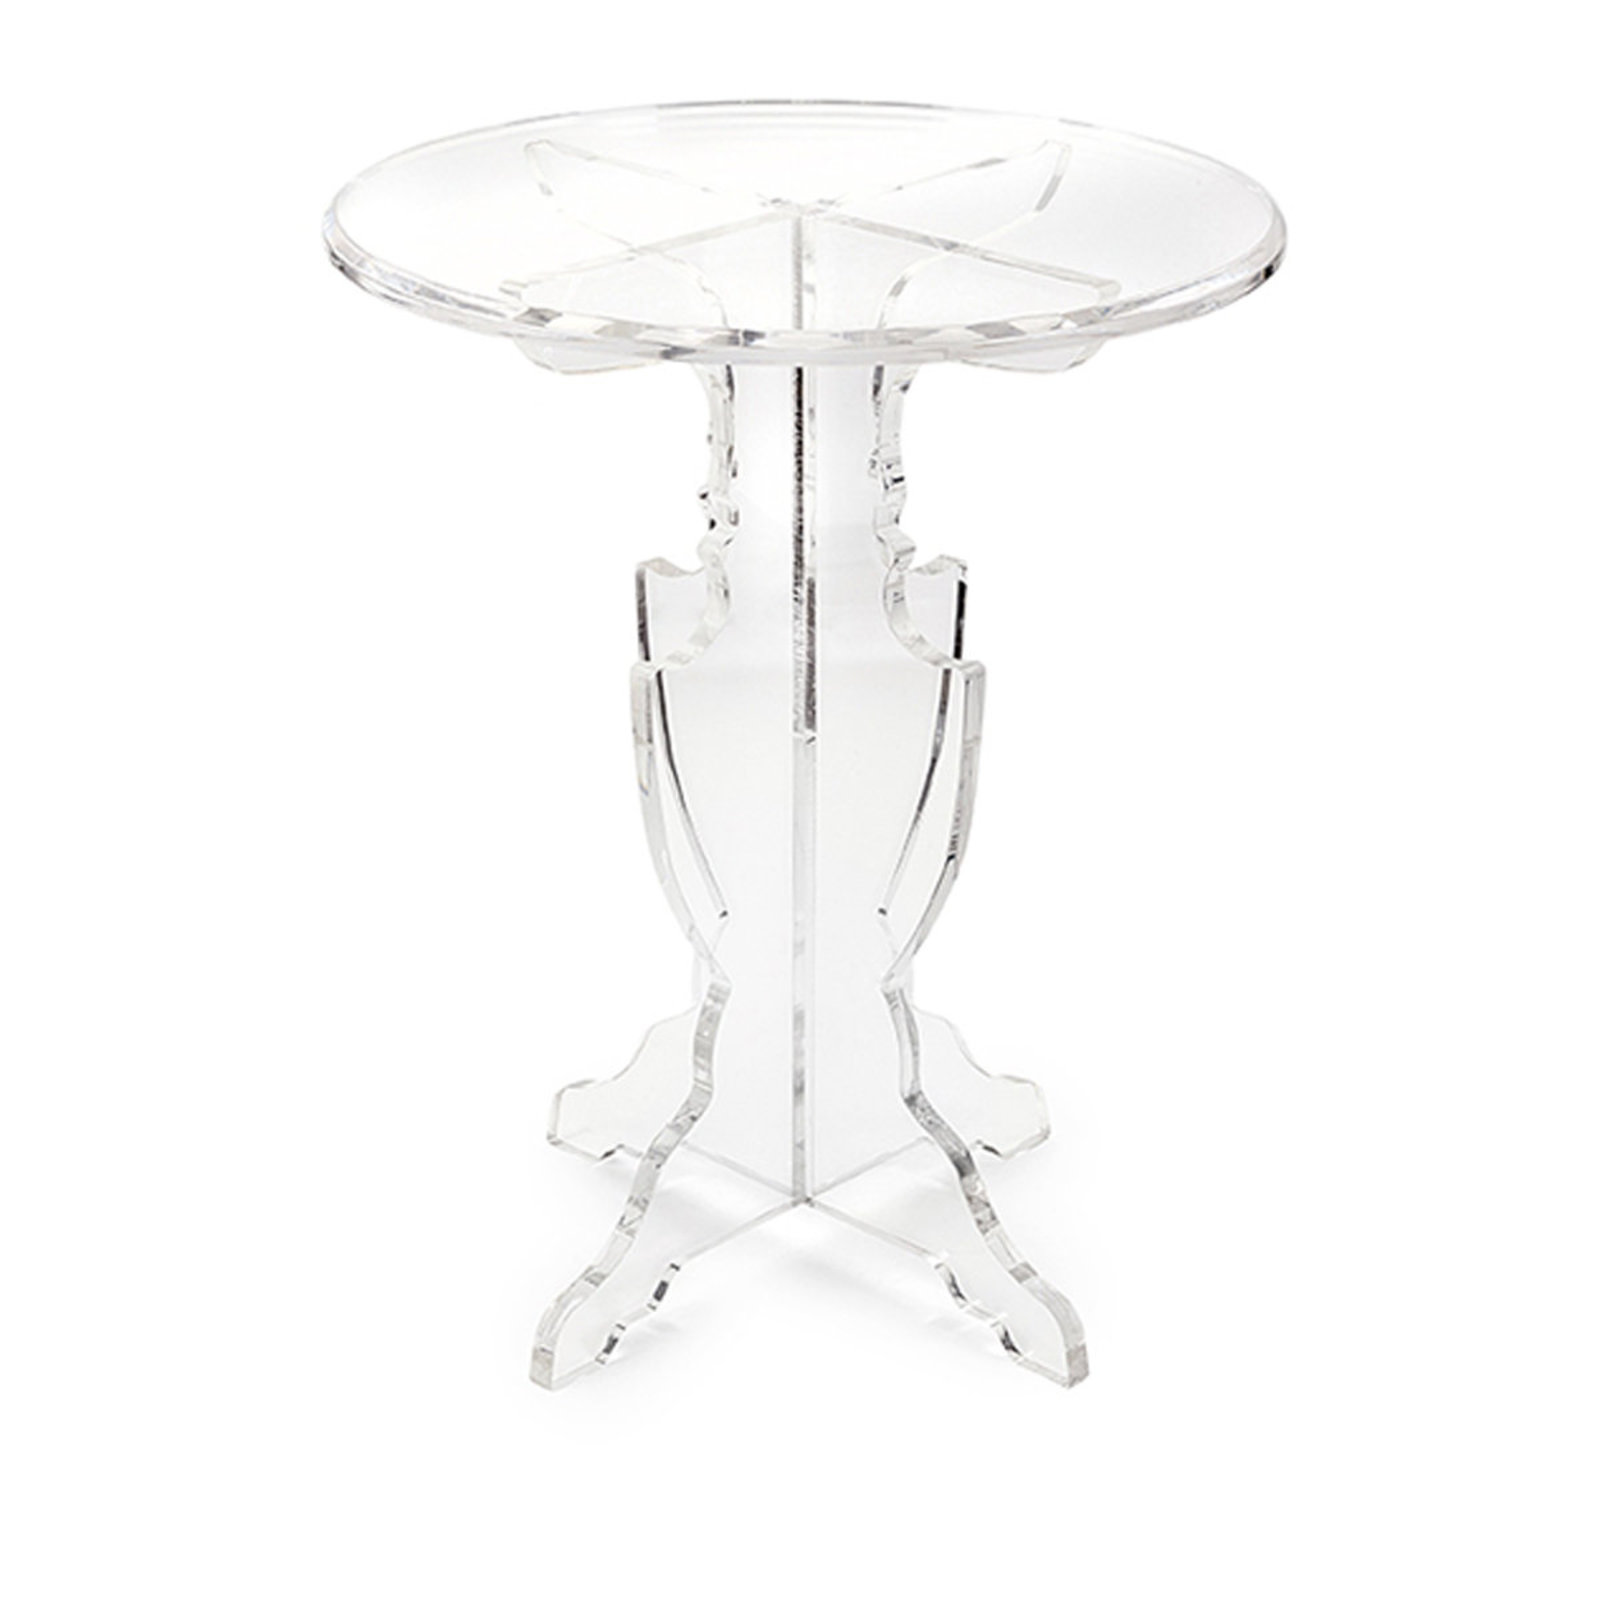 modern classic acrylic accent table shades light clear outdoor umbrella and stand wrought iron patio furniture lucite waterfall coffee chrome door threshold porcelain vase lamp